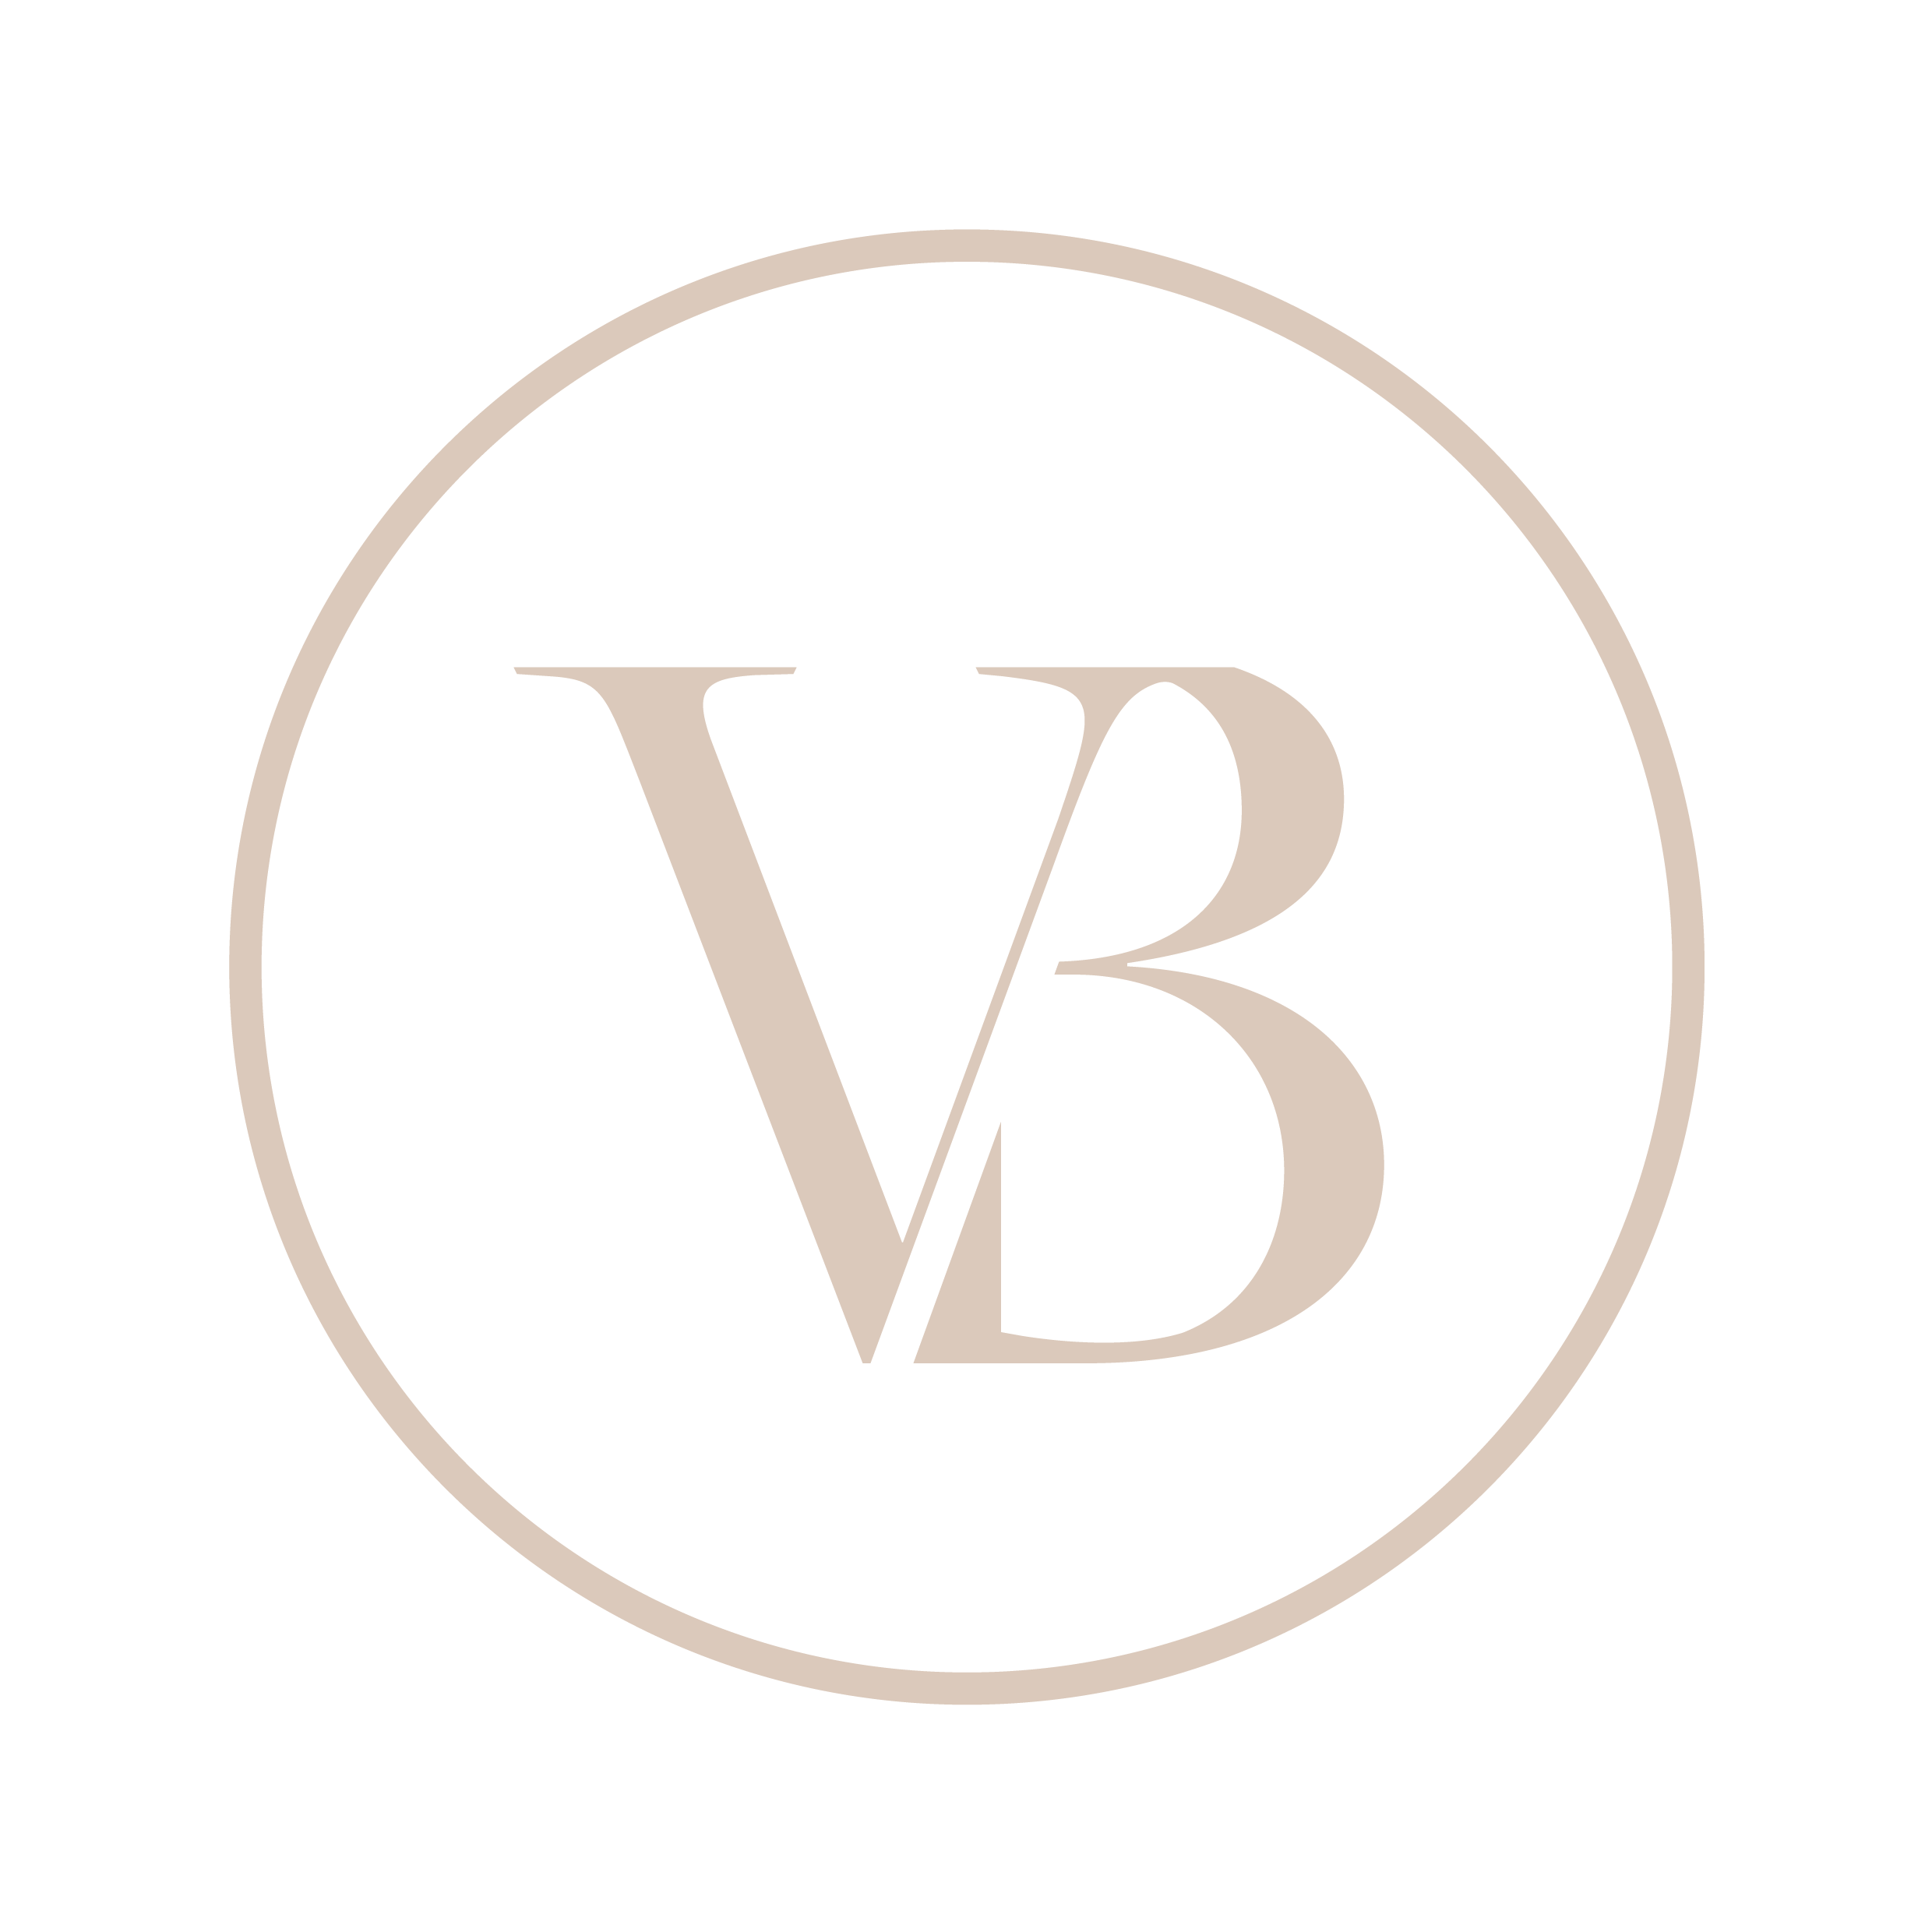 VirtuBrands - Final Logo - ICON (Clear Background)-06.png